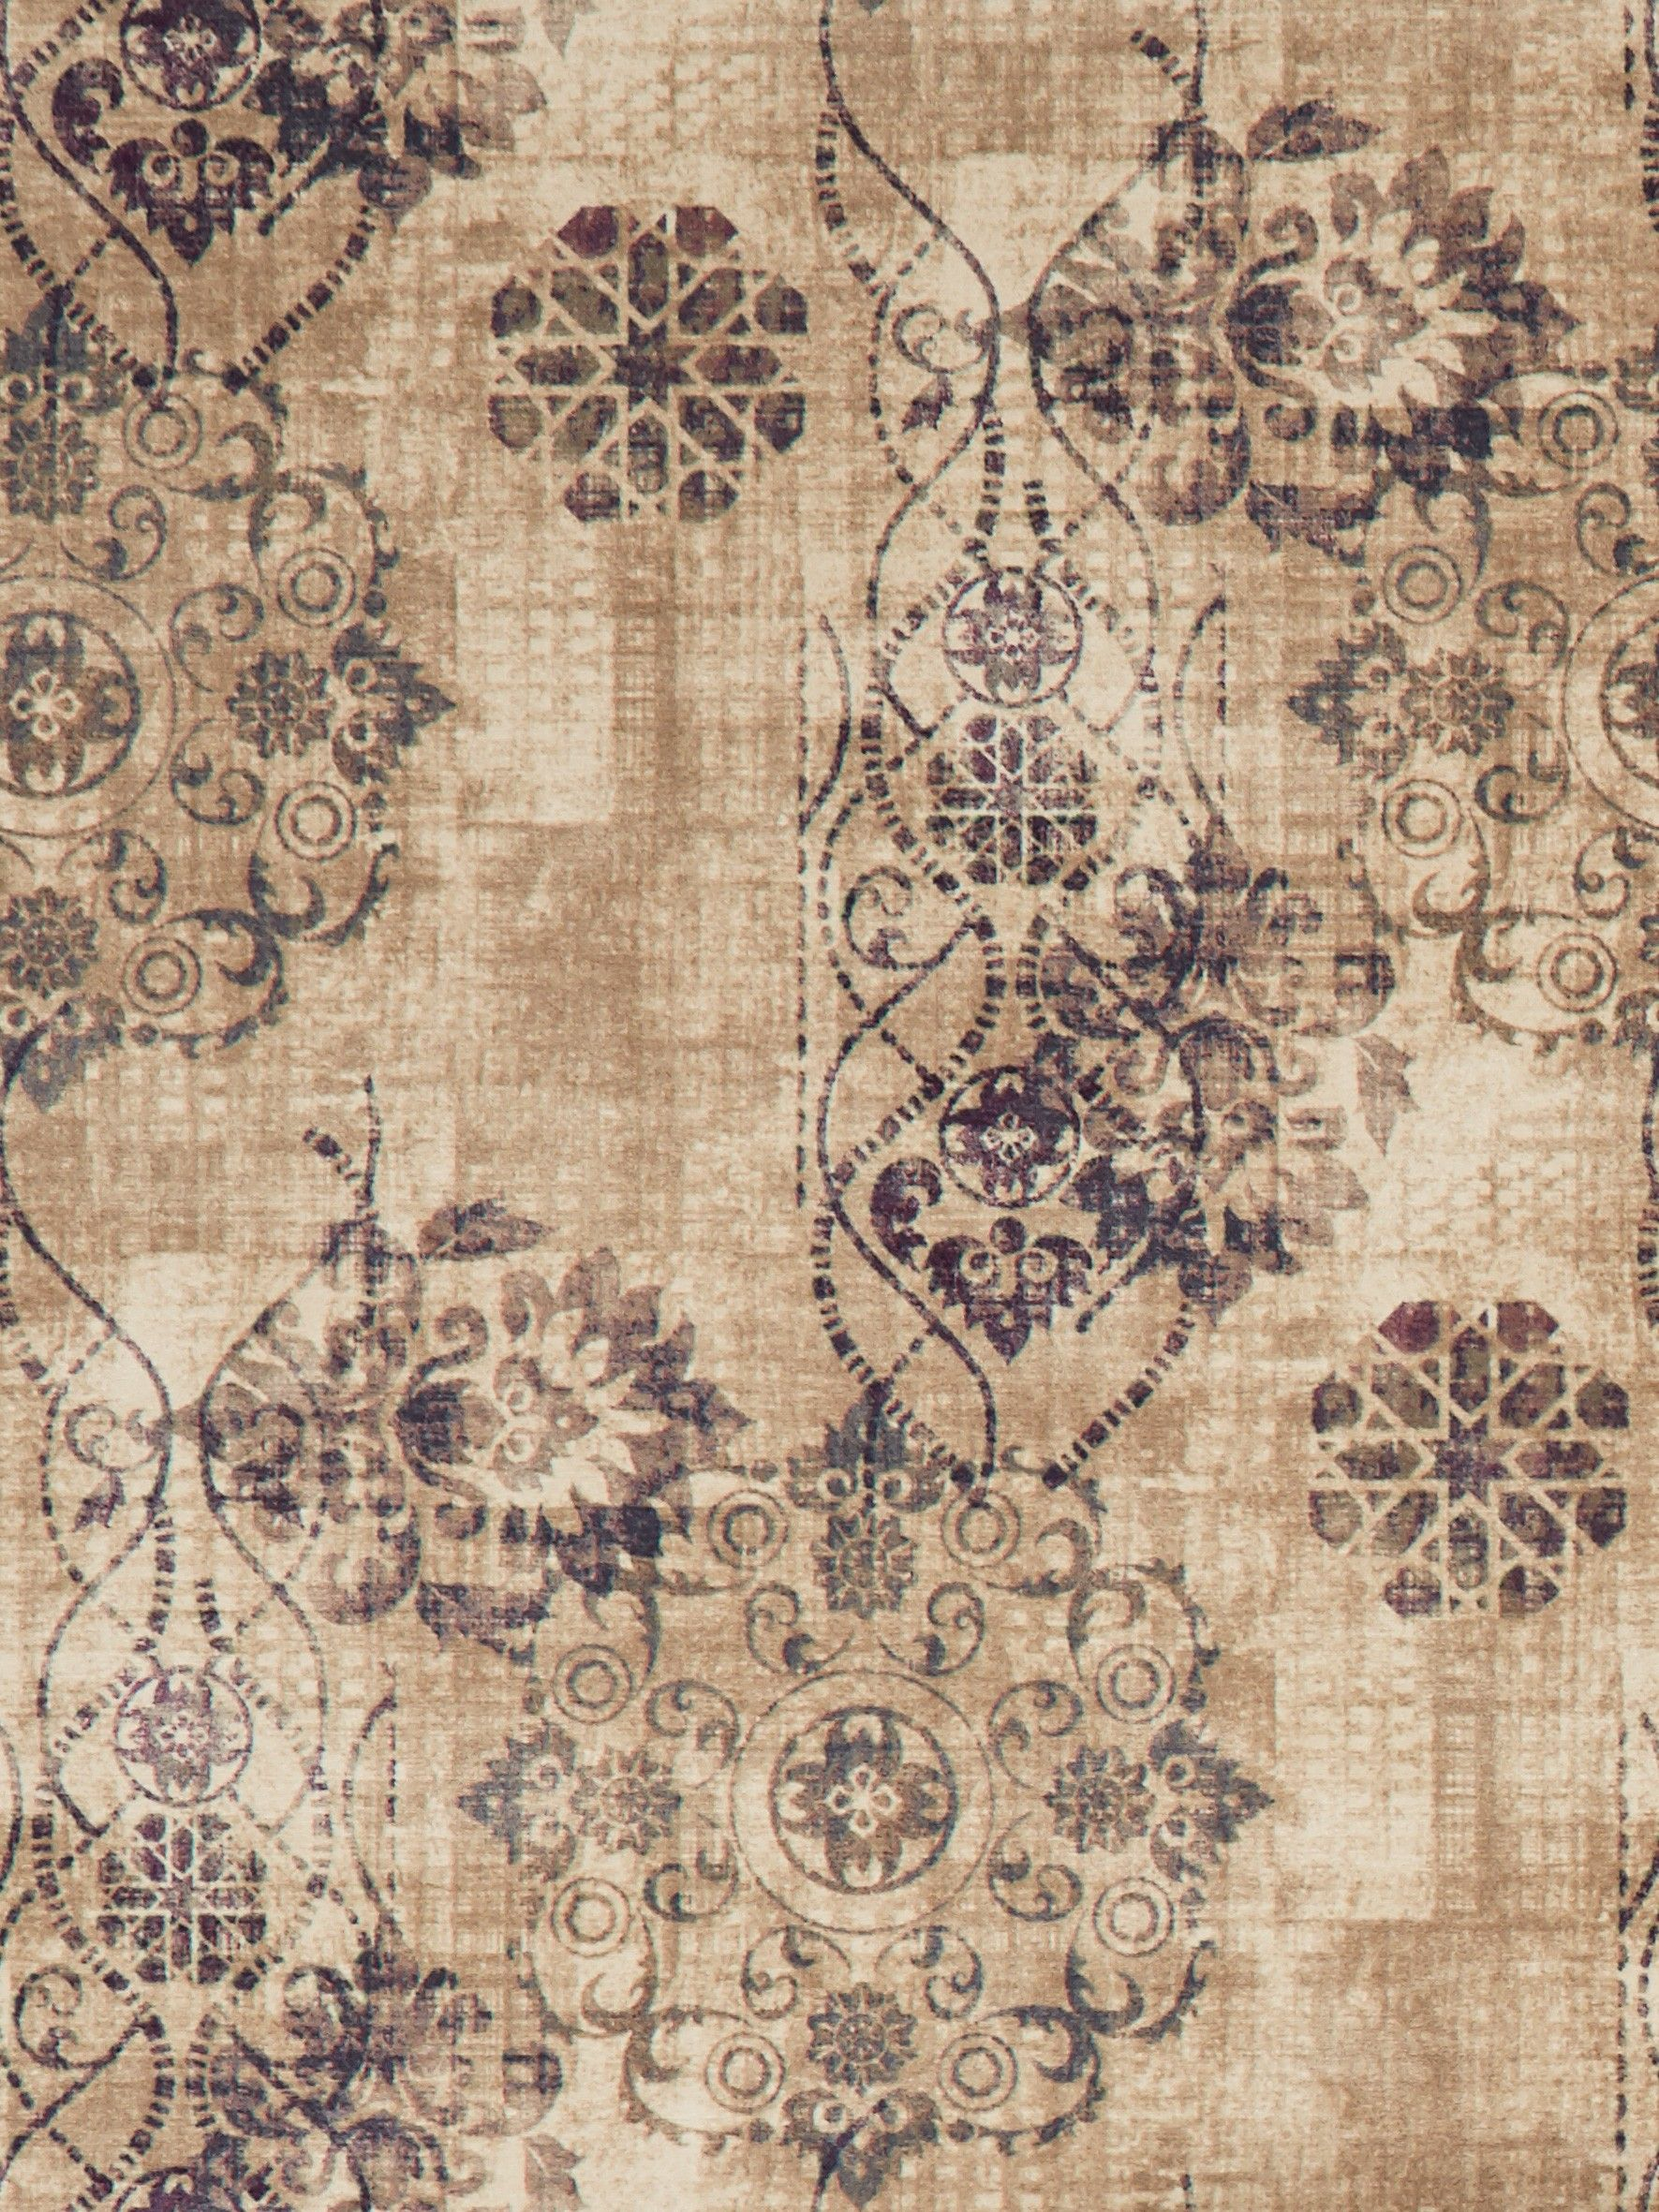 Desso Teppich Vintage Vintage Vloerkleed 173 201 Desso Eric Standley Rugs Fabric